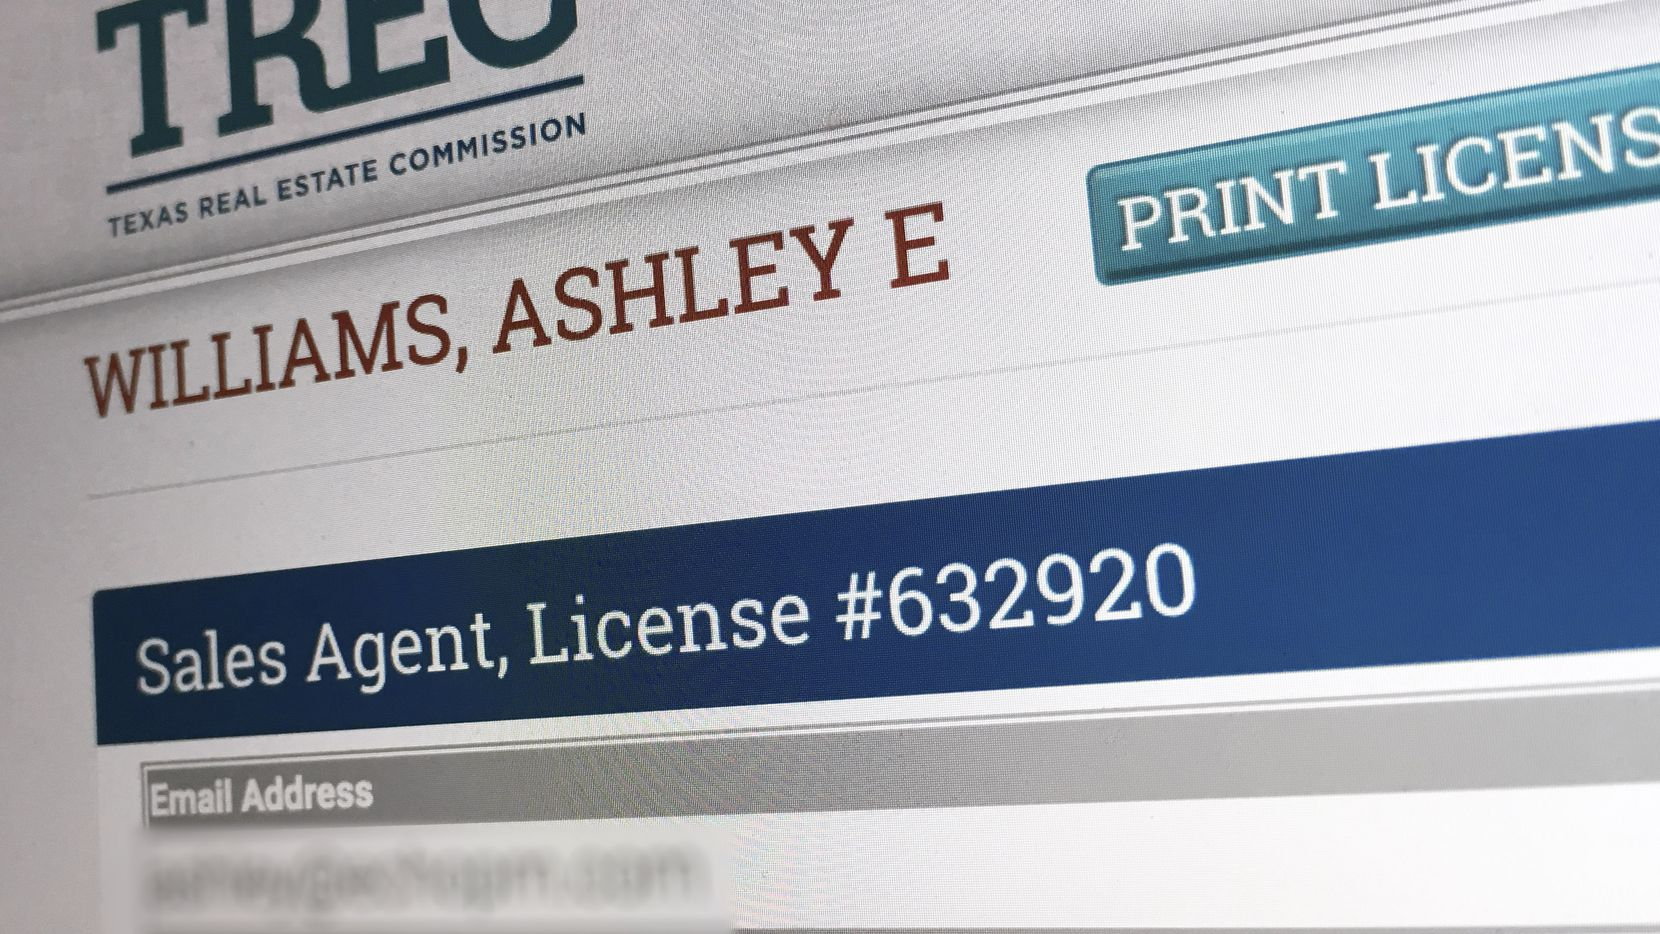 In one of the biggest fines in its history, the Texas Real Estate Commission proved a case of negligence against real estate sales agent Ashley Elizabeth Williams Creamer. She was fined $122,000. (In this image from the regulators' website, her email address has been blurred out for privacy.)